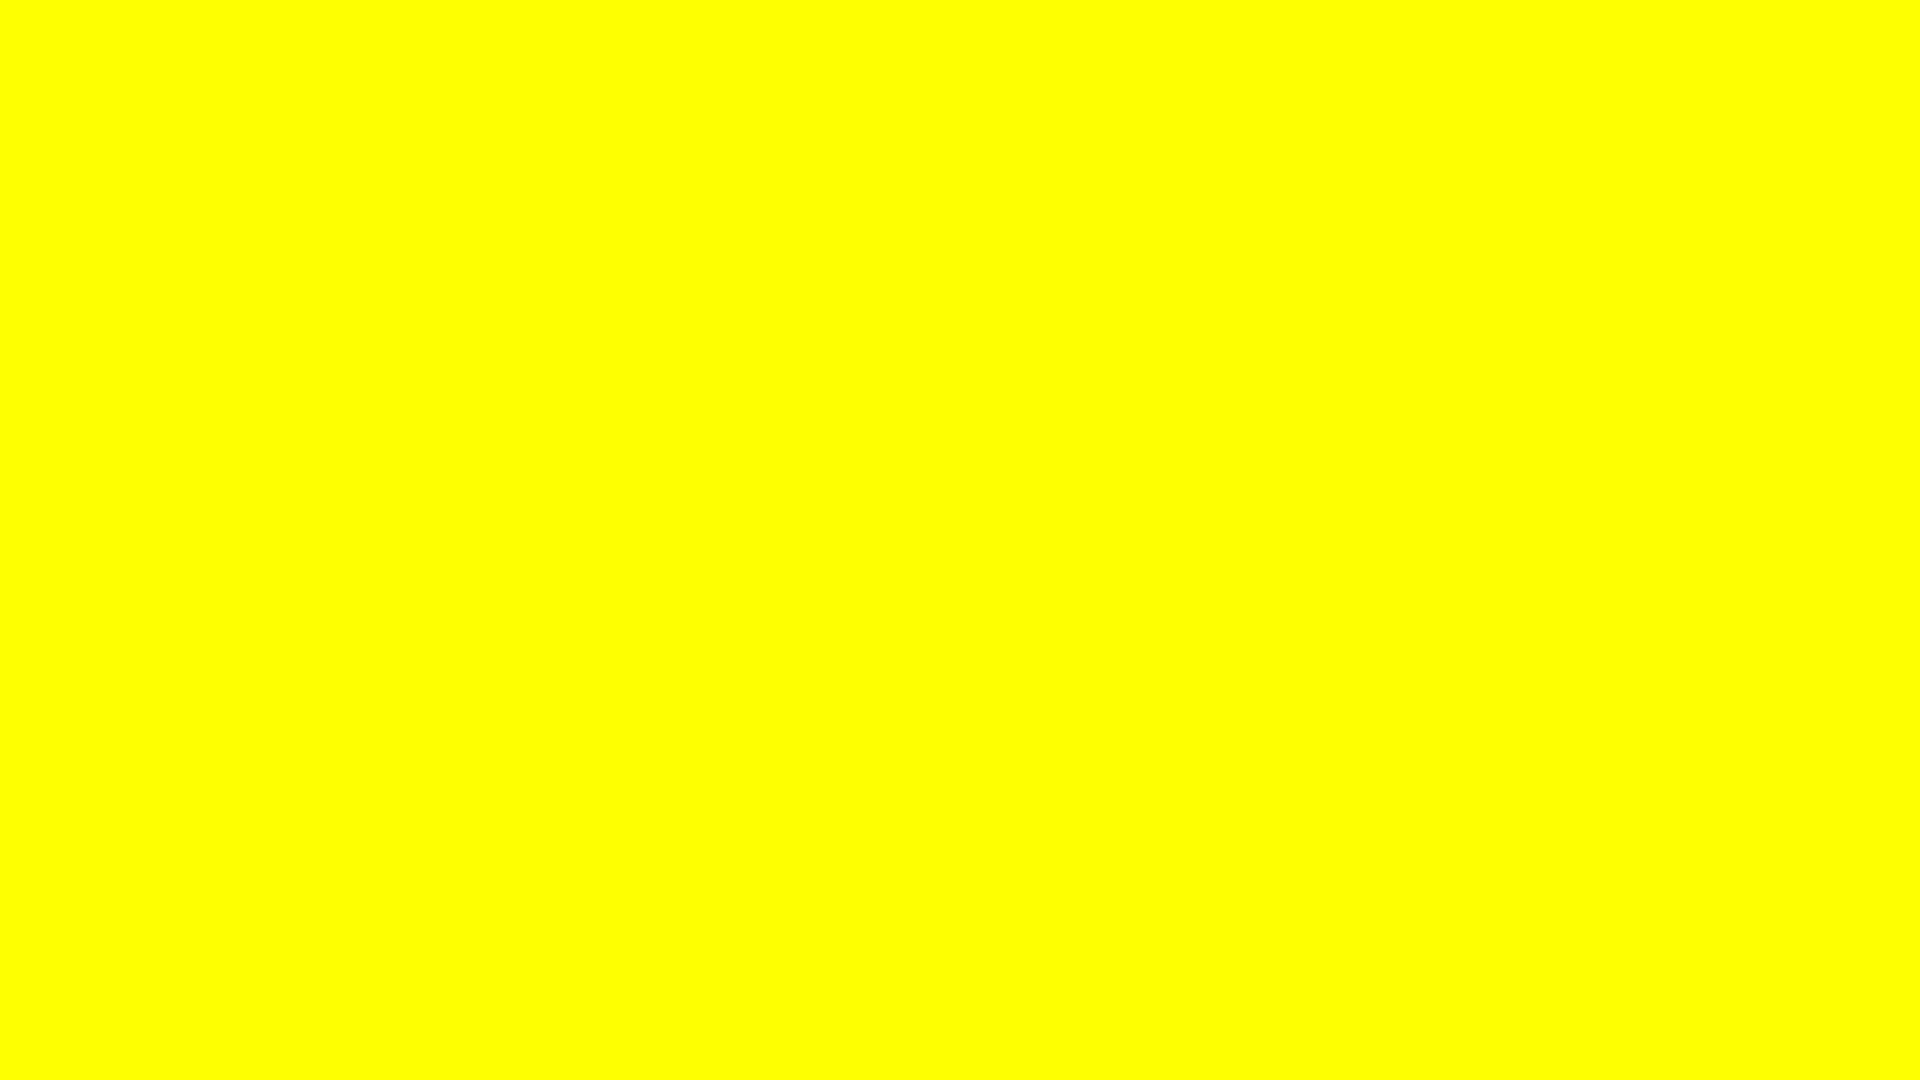 yellowscreen